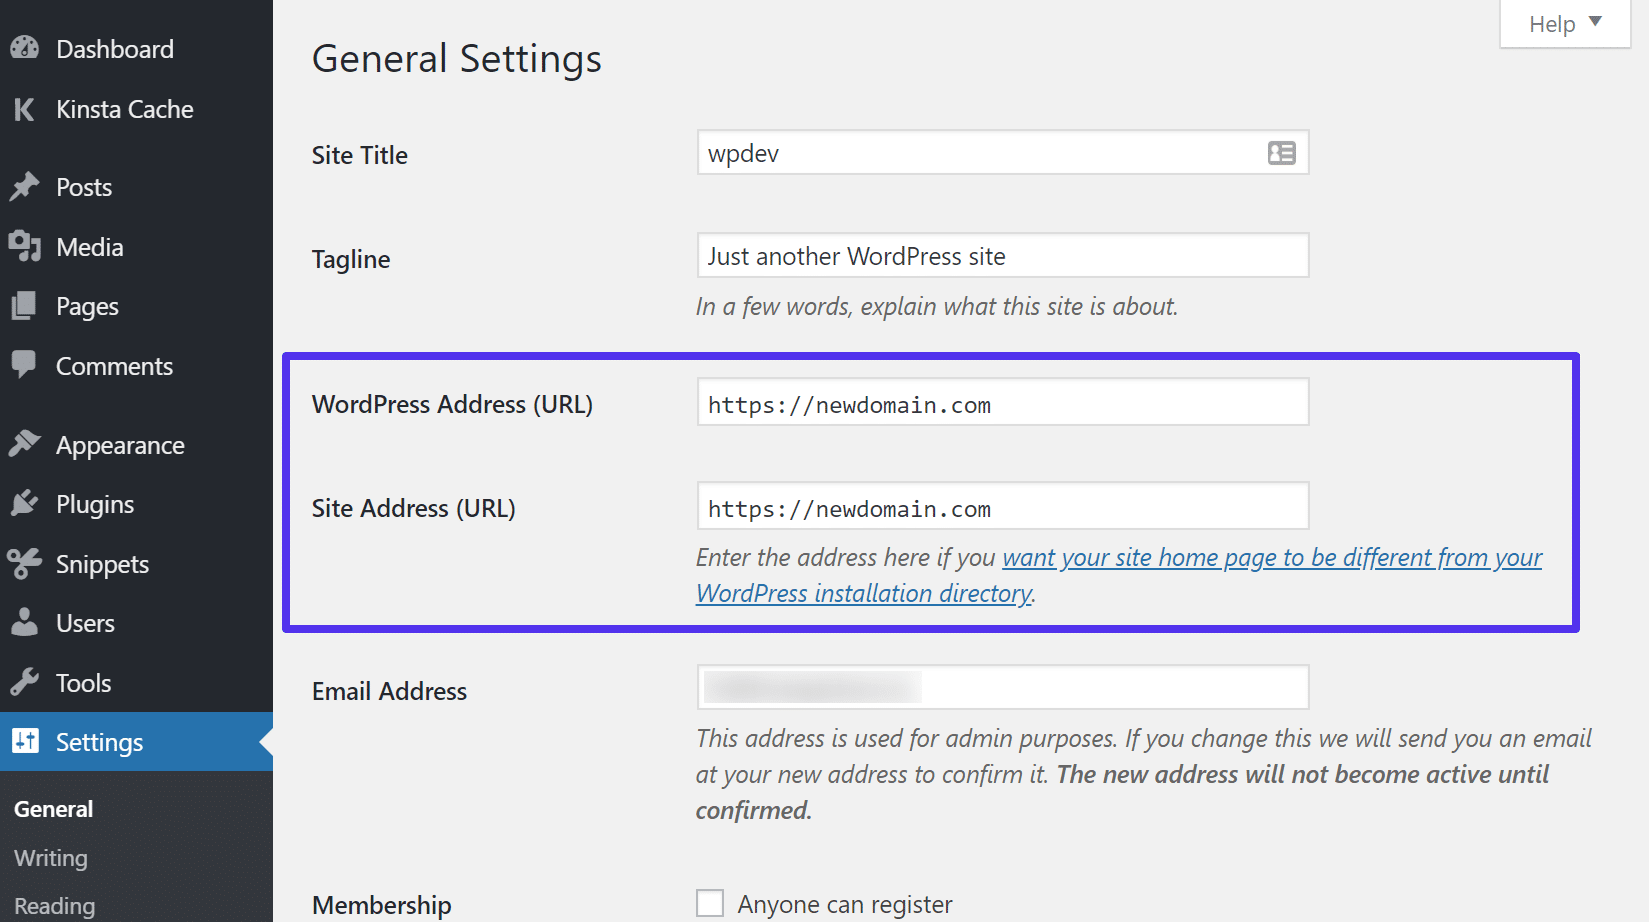 Update WordPress address and site URL